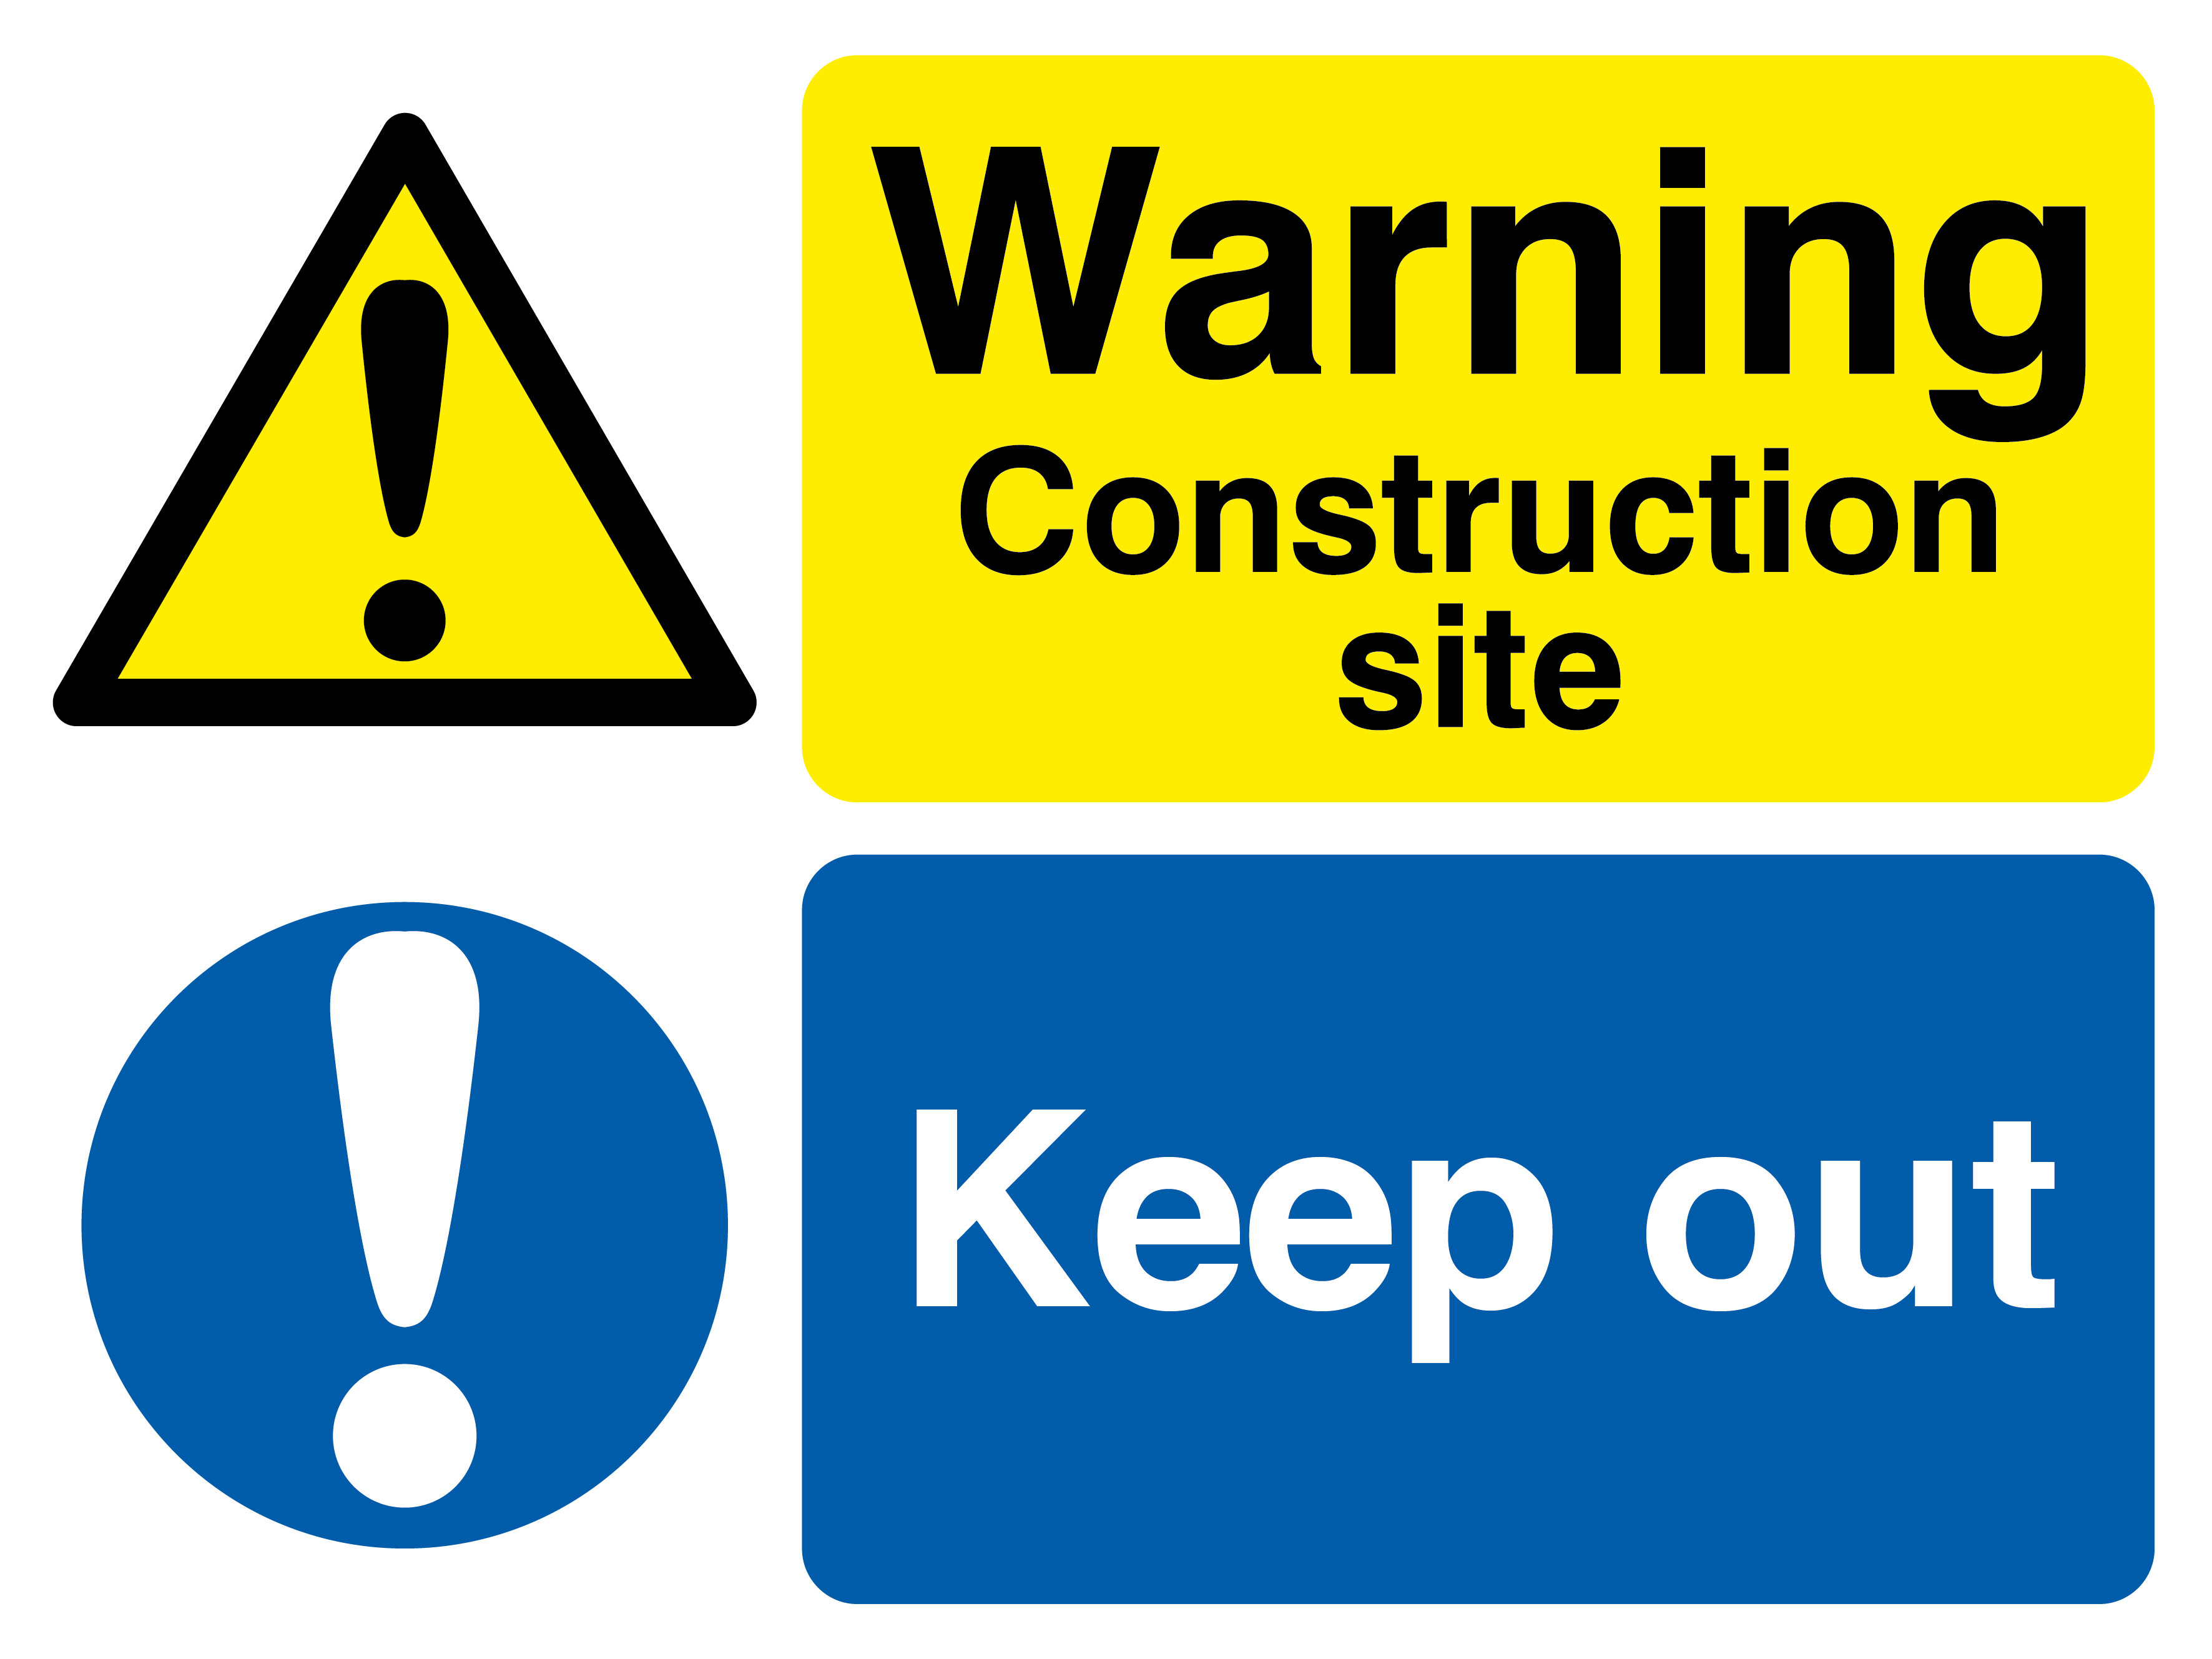 450 x 600 Warning Construction Site, Keep Out 1.2mm rigid polypropylene sign